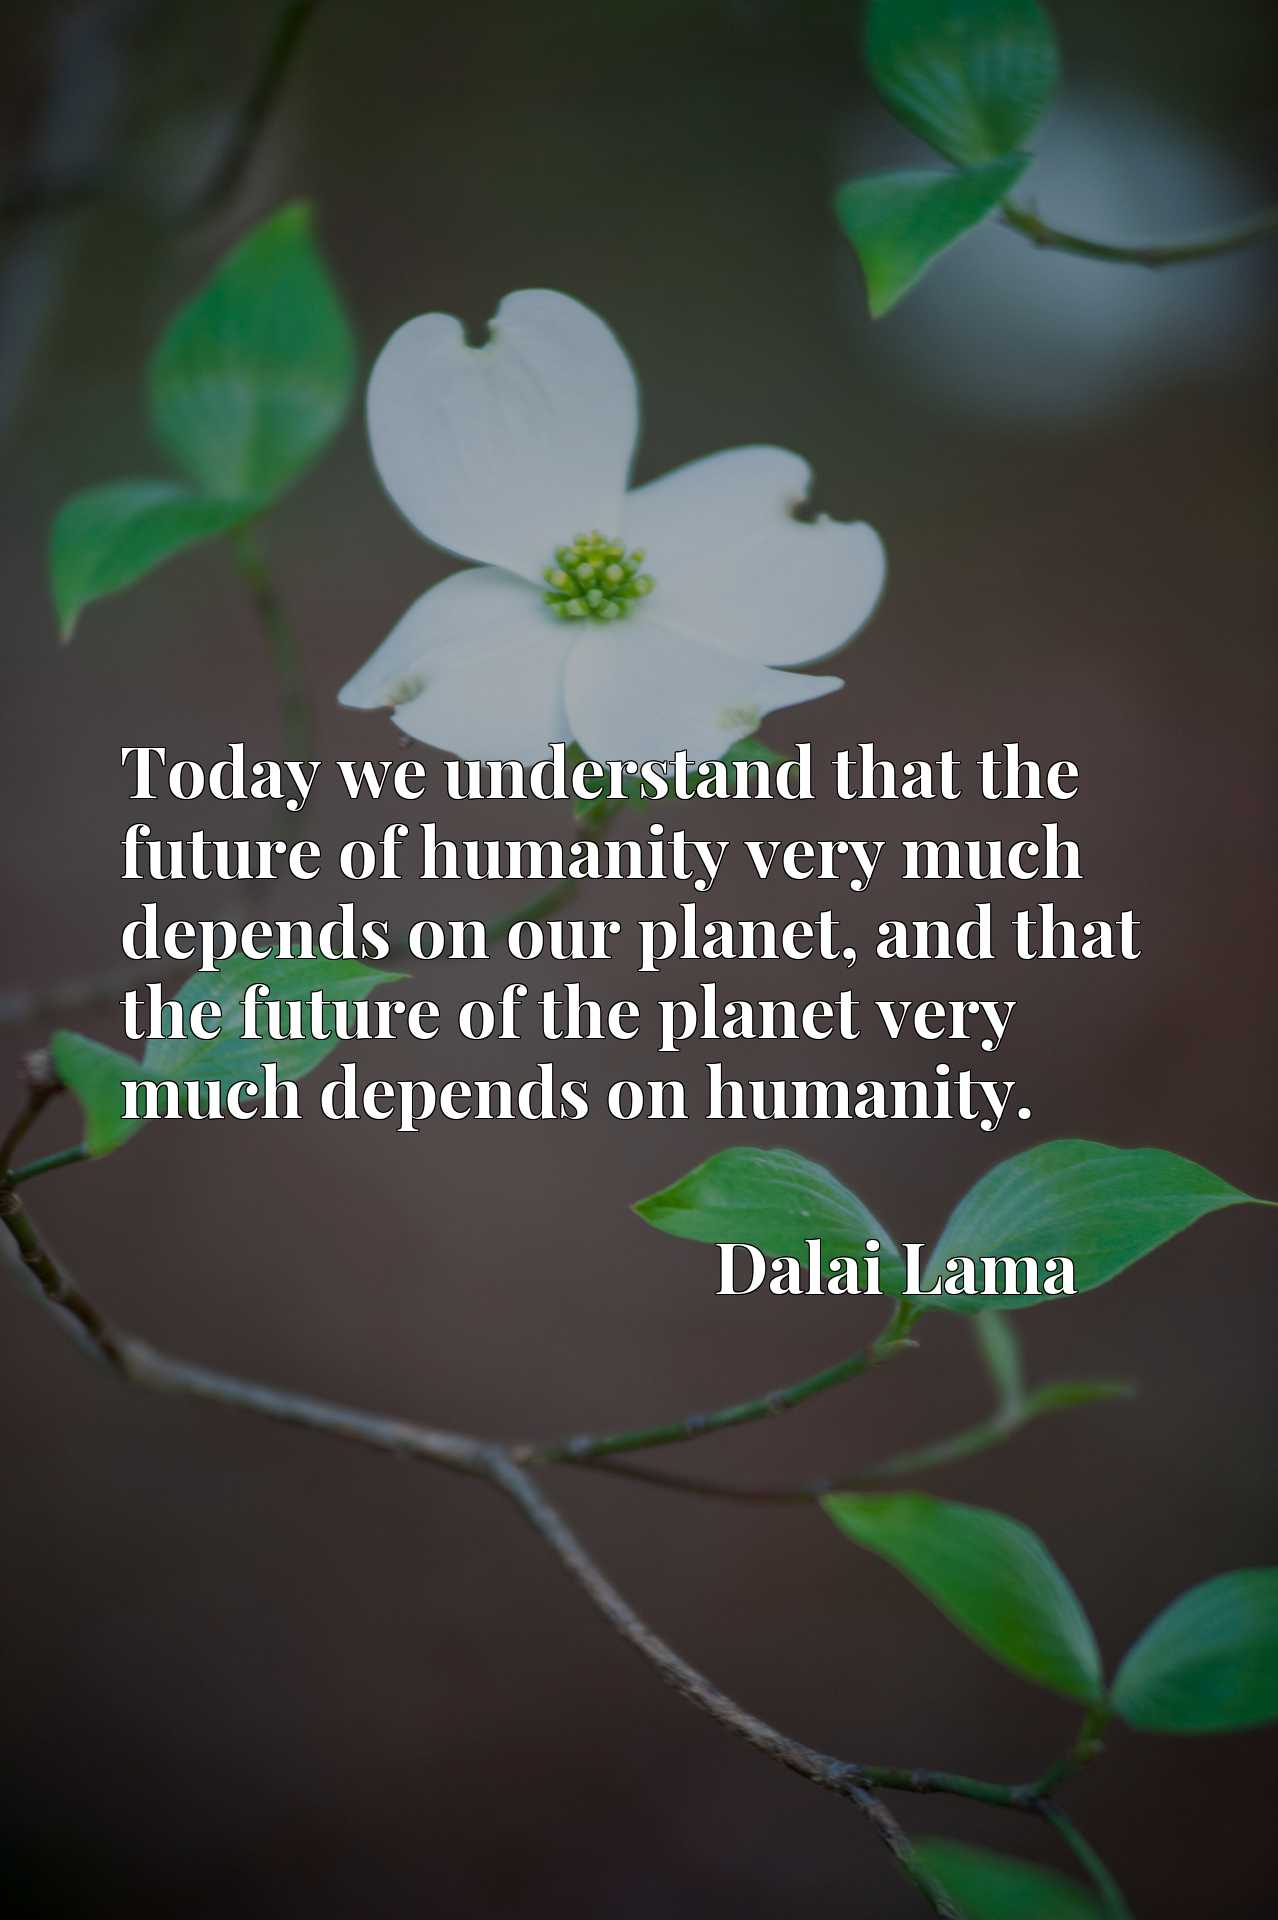 Today we understand that the future of humanity very much depends on our planet, and that the future of the planet very much depends on humanity.